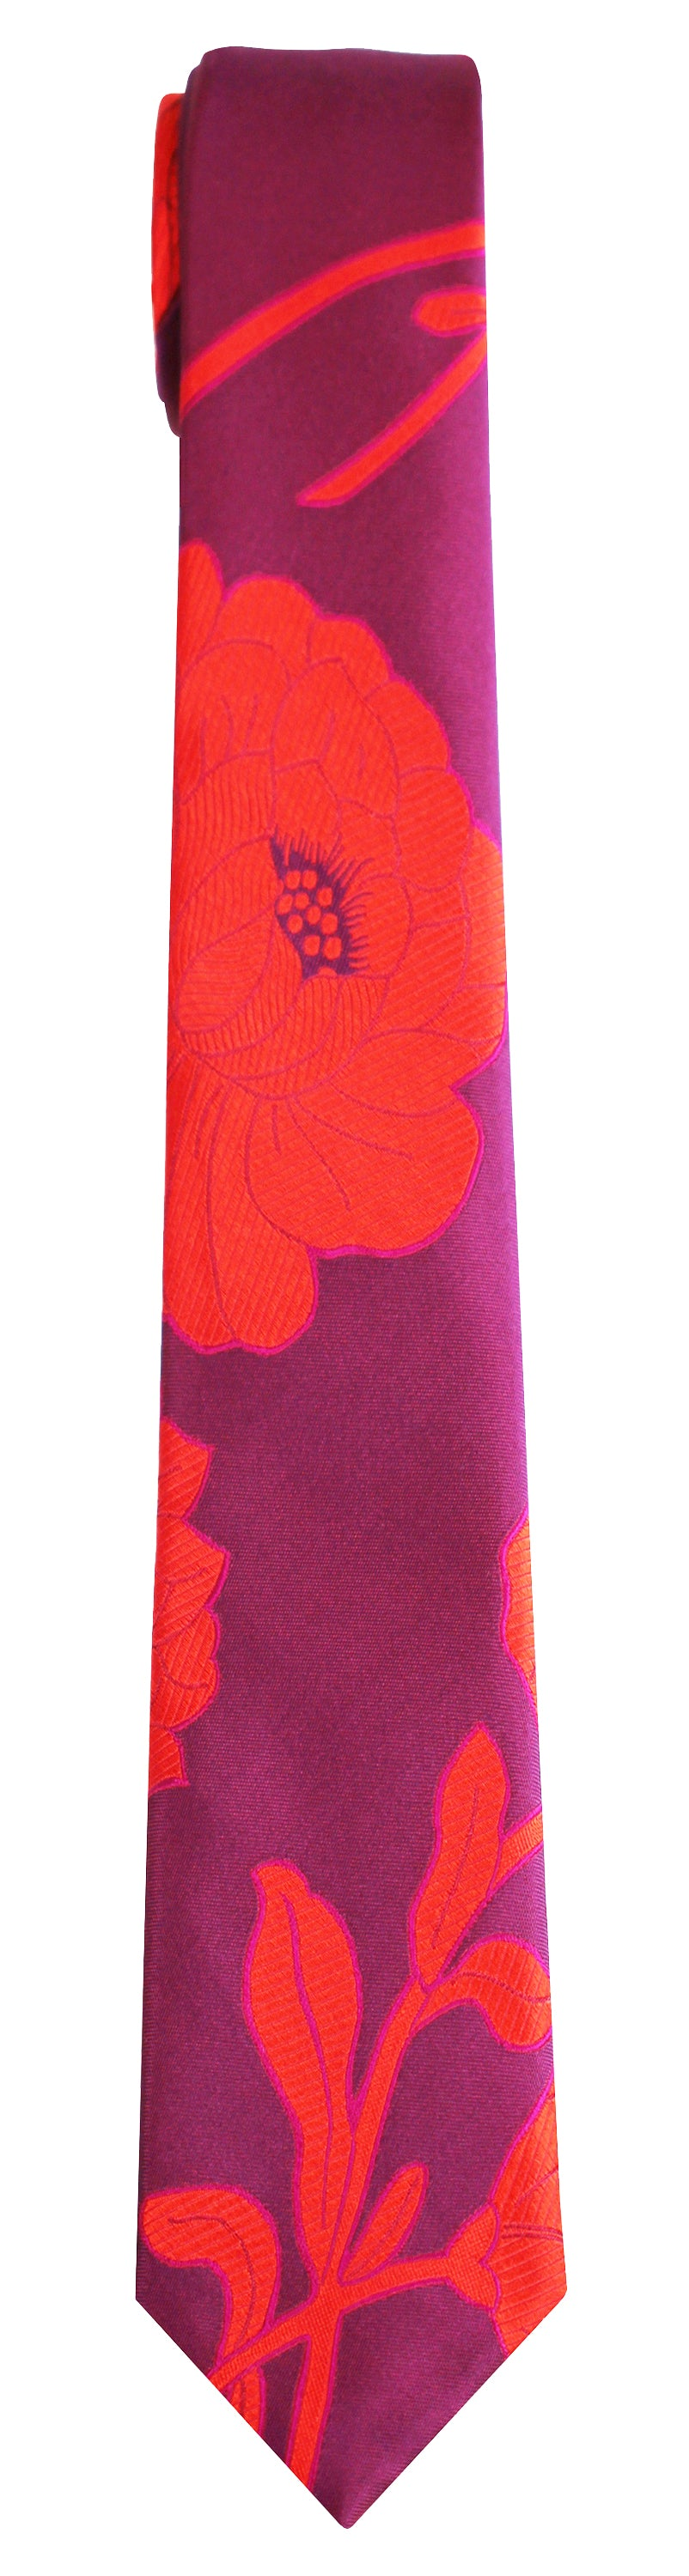 Mimi Fong Large Flower Tie in Sangria